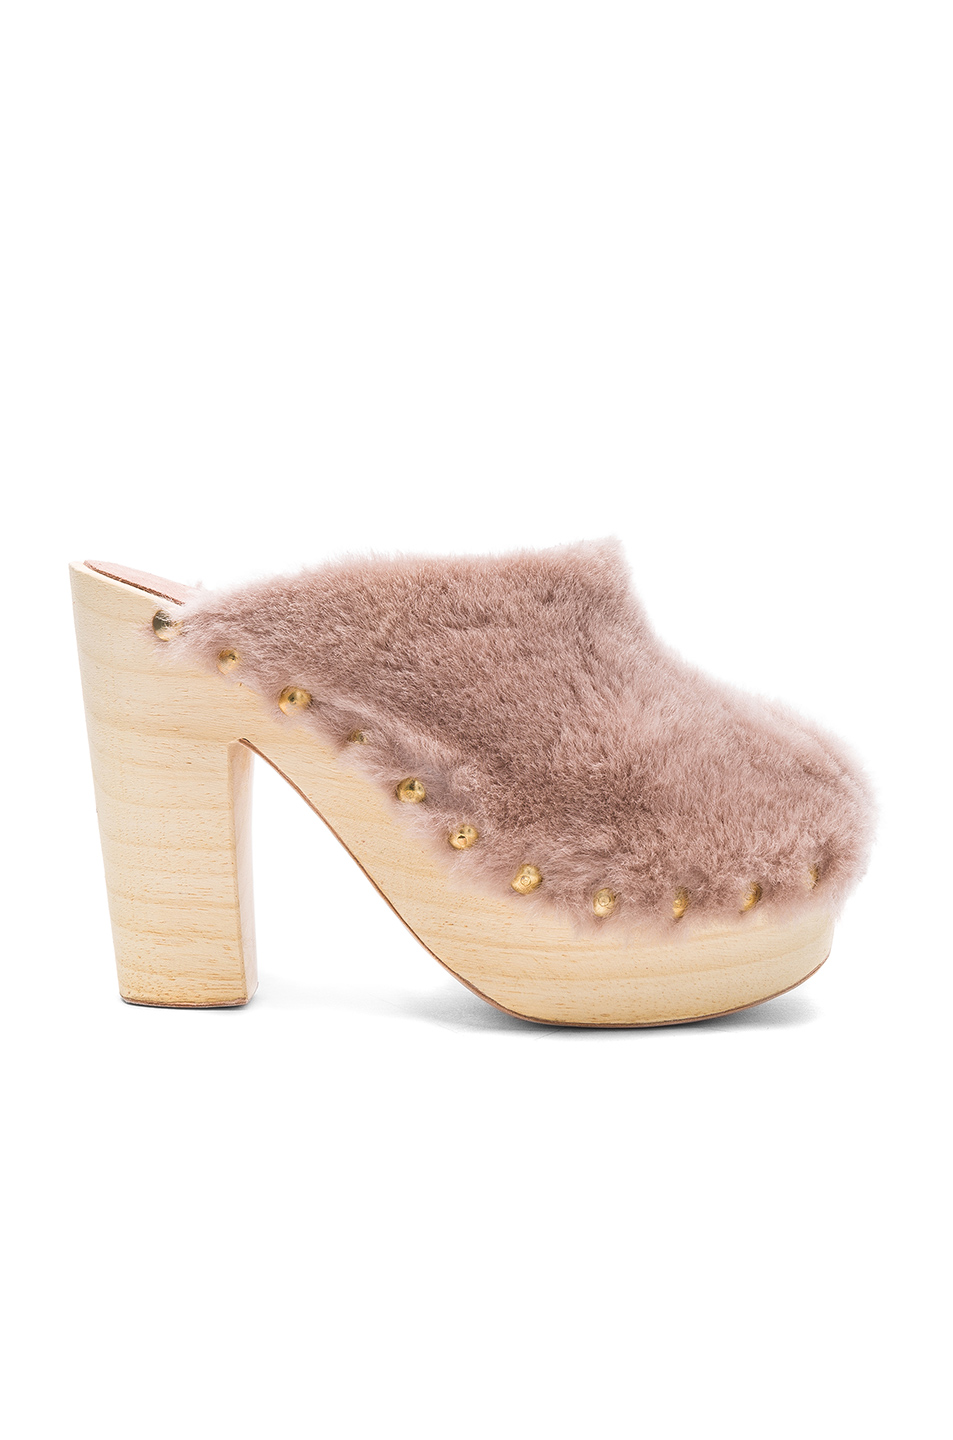 Brother Vellies Sheep Shearling Clog Heels in Pink